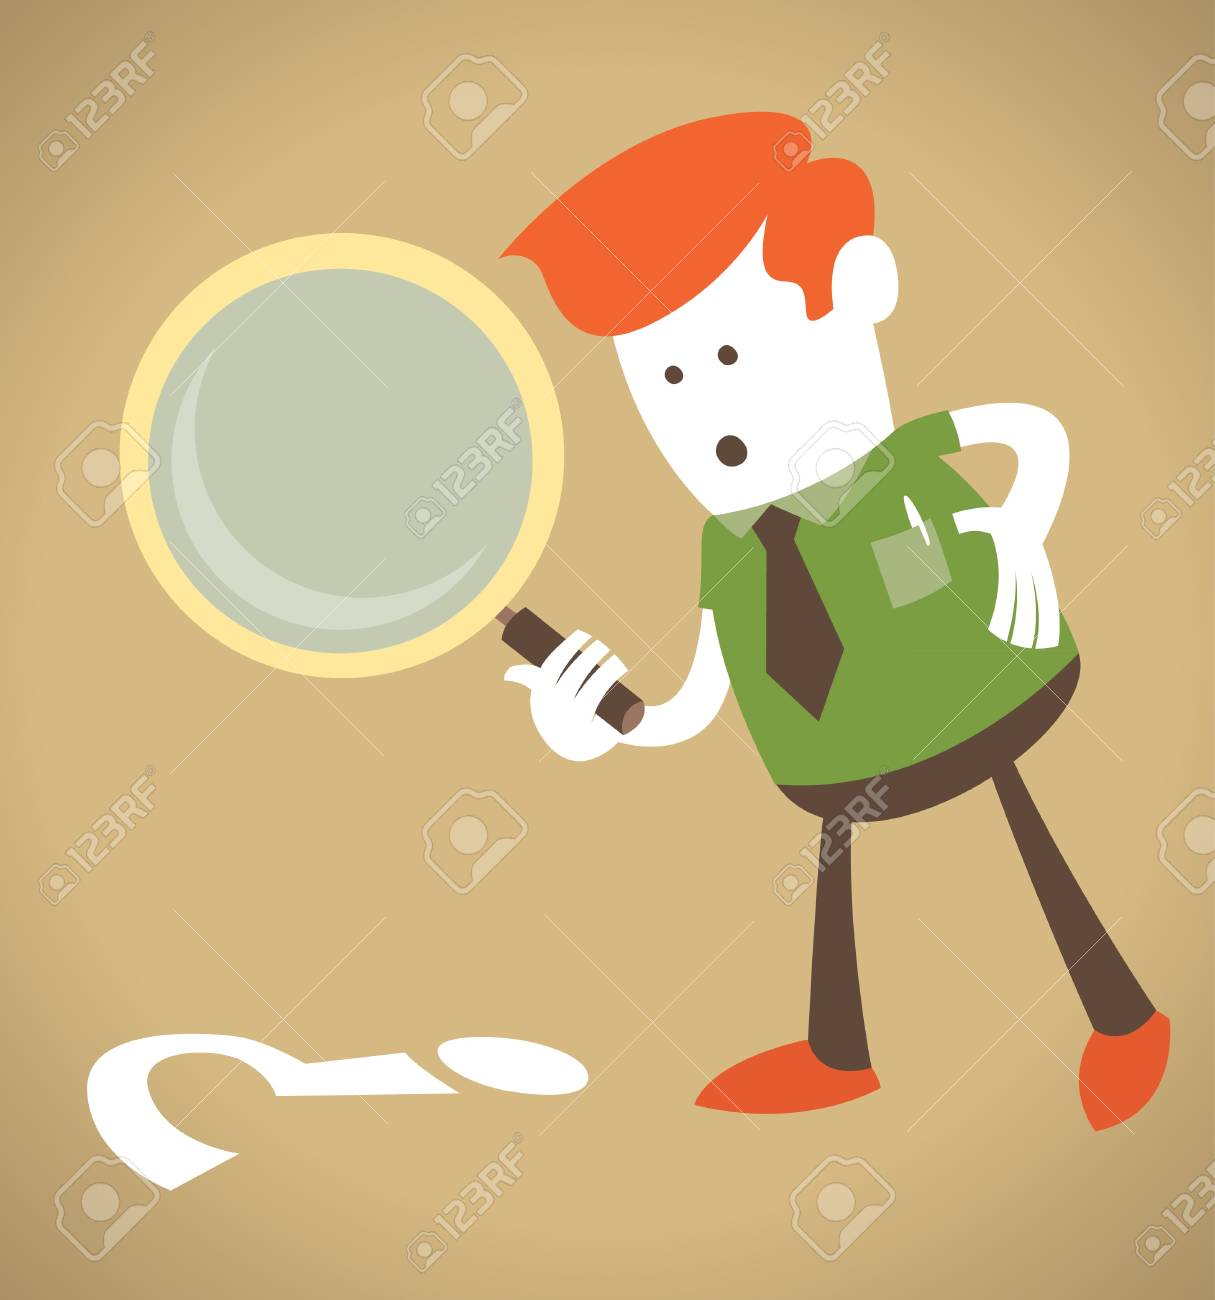 Retro Corporate Guy with magnifying glass Stock Vector - 12496272